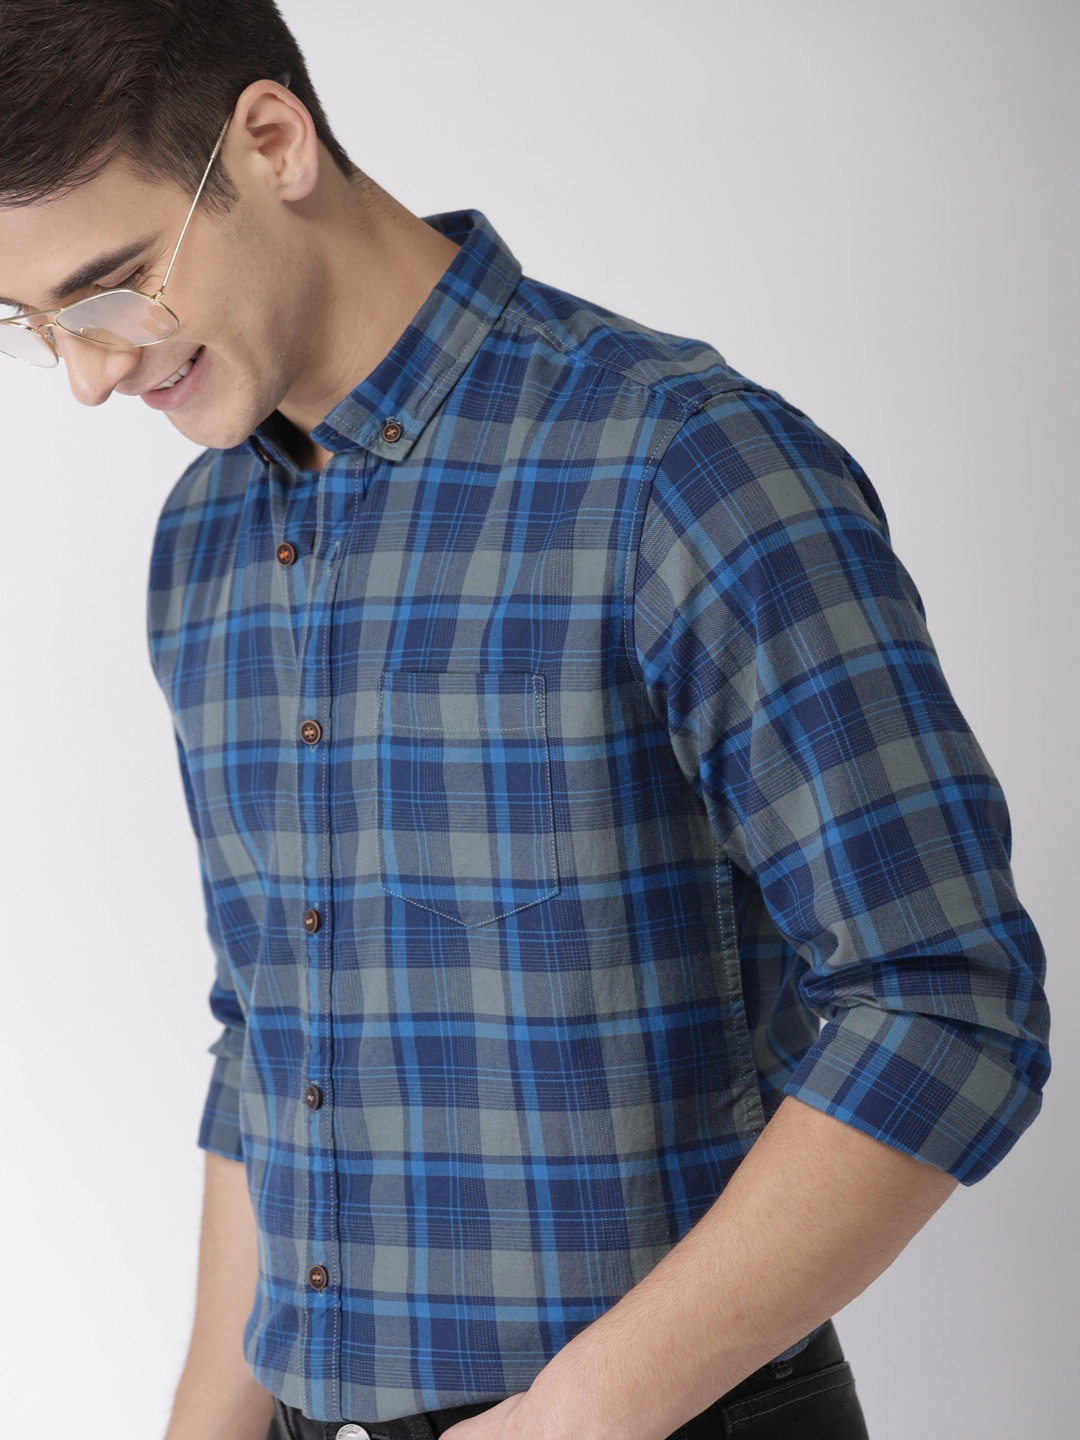 b6a11658edce Casual Shirts for Men - Buy Men Casual Shirt Online in India